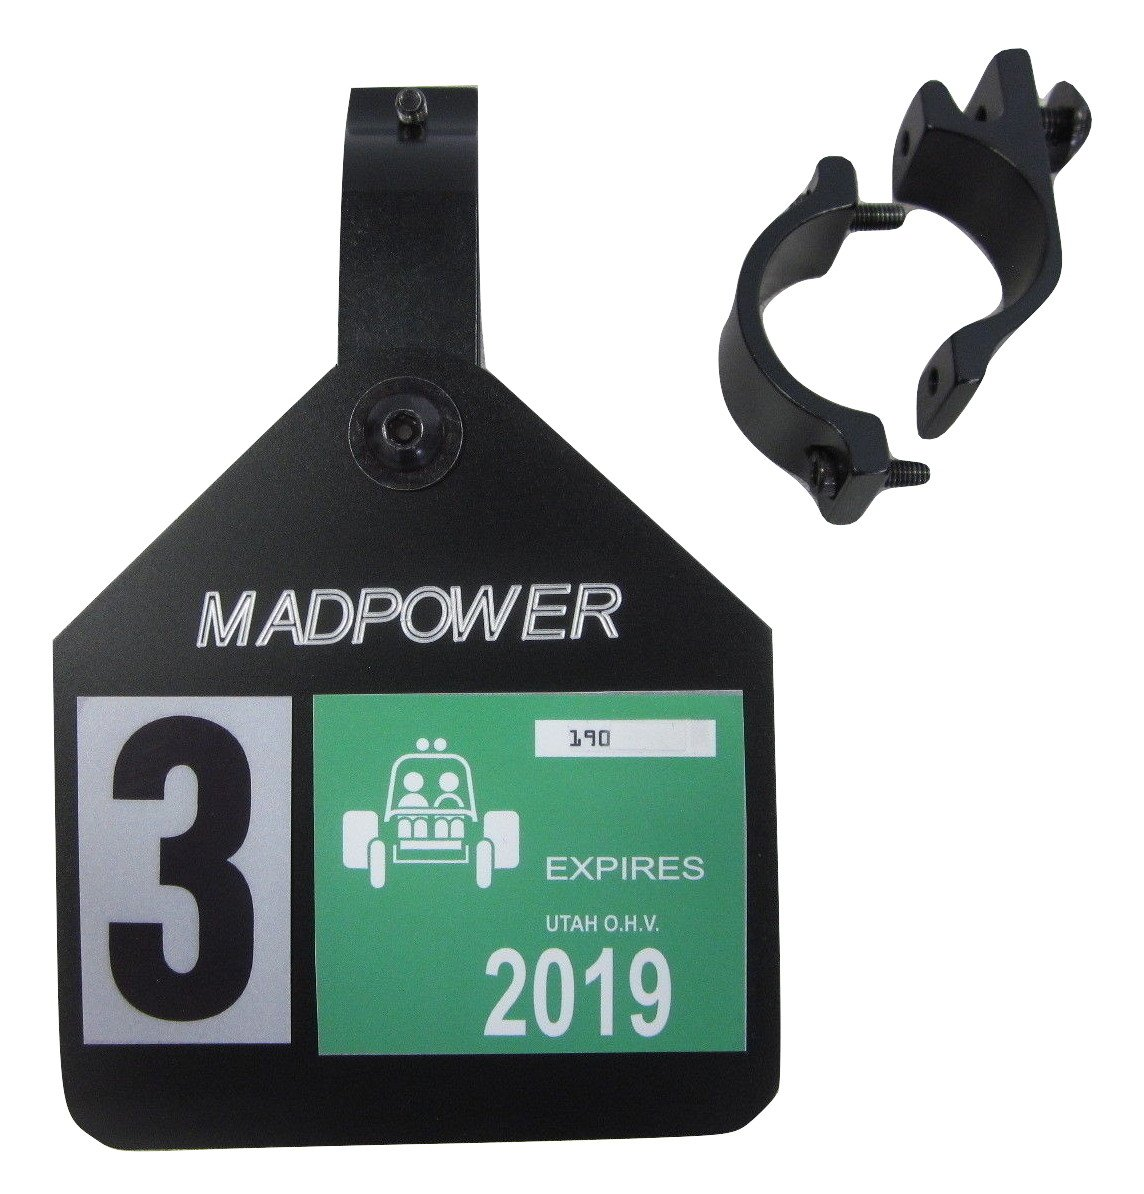 Madpower5 - UTV, Side x Side OHV Off Road Vehicle Tag License Plate Decal Mount - 5in Wide x 3.50in Tall Tall - Black Anodized Aluminum Plate w/1.75'' Diameter Black Cage Clamp